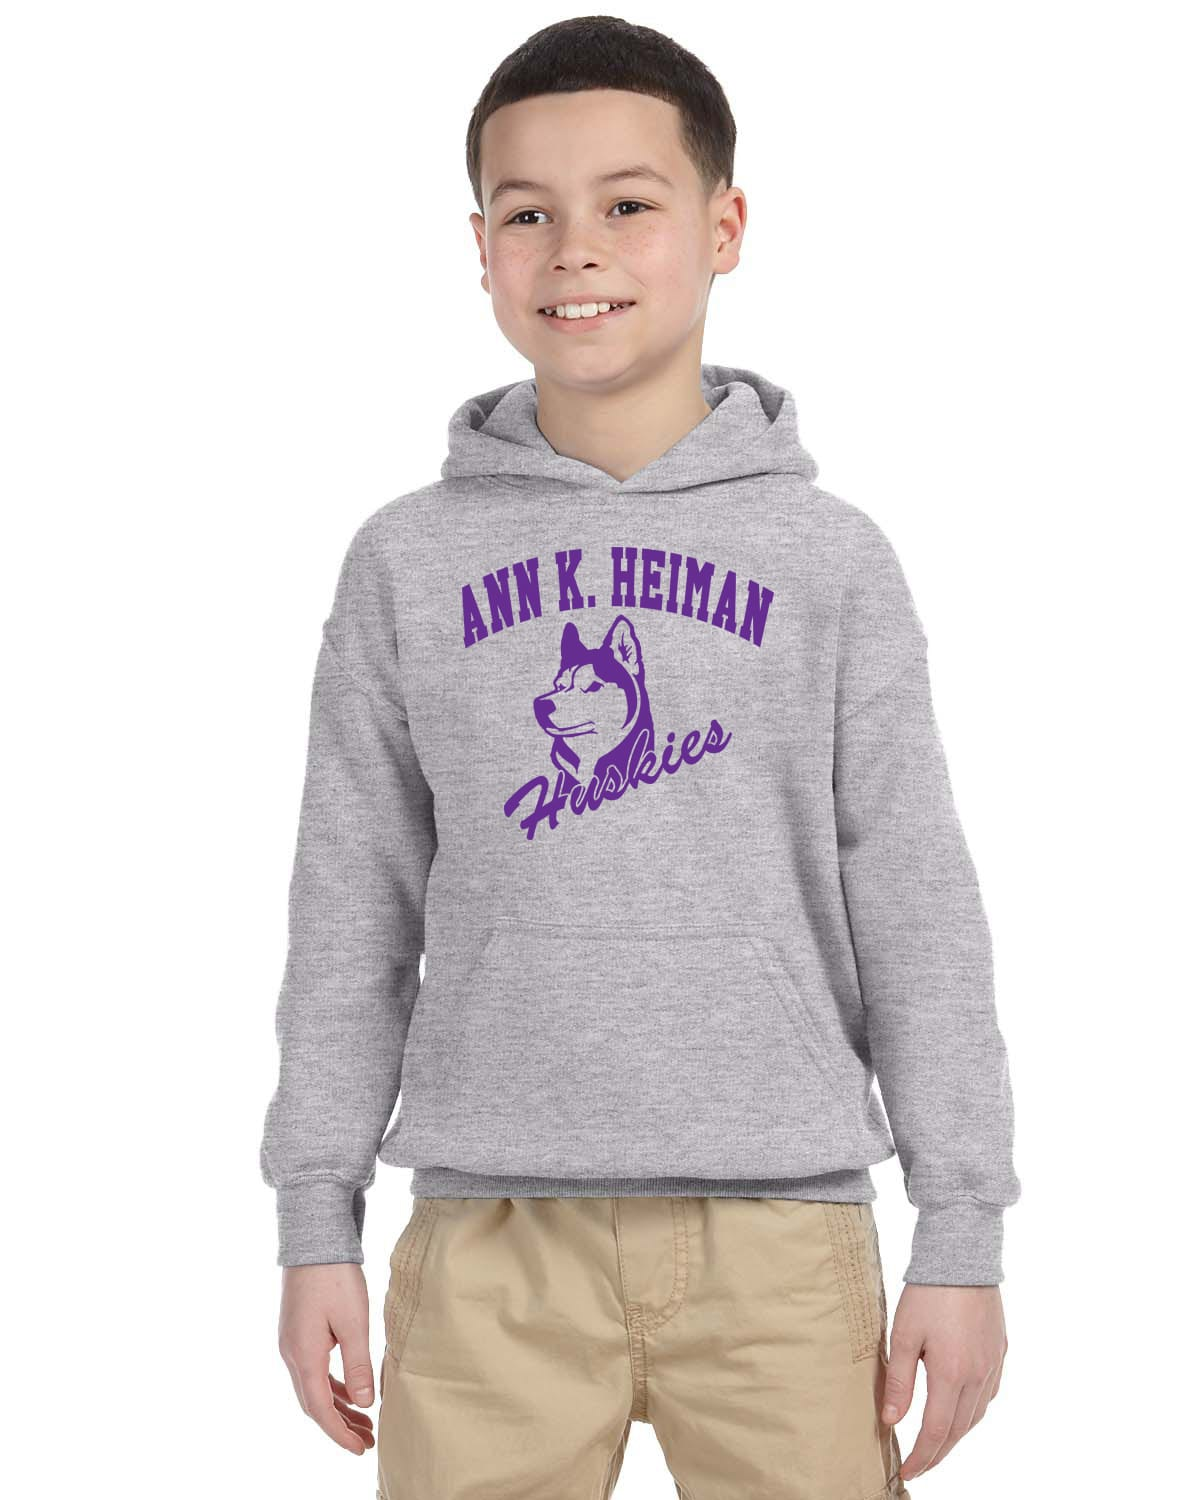 Heiman Elementary School Youth Grey Fleece Pullover Hooded Sweatshirt